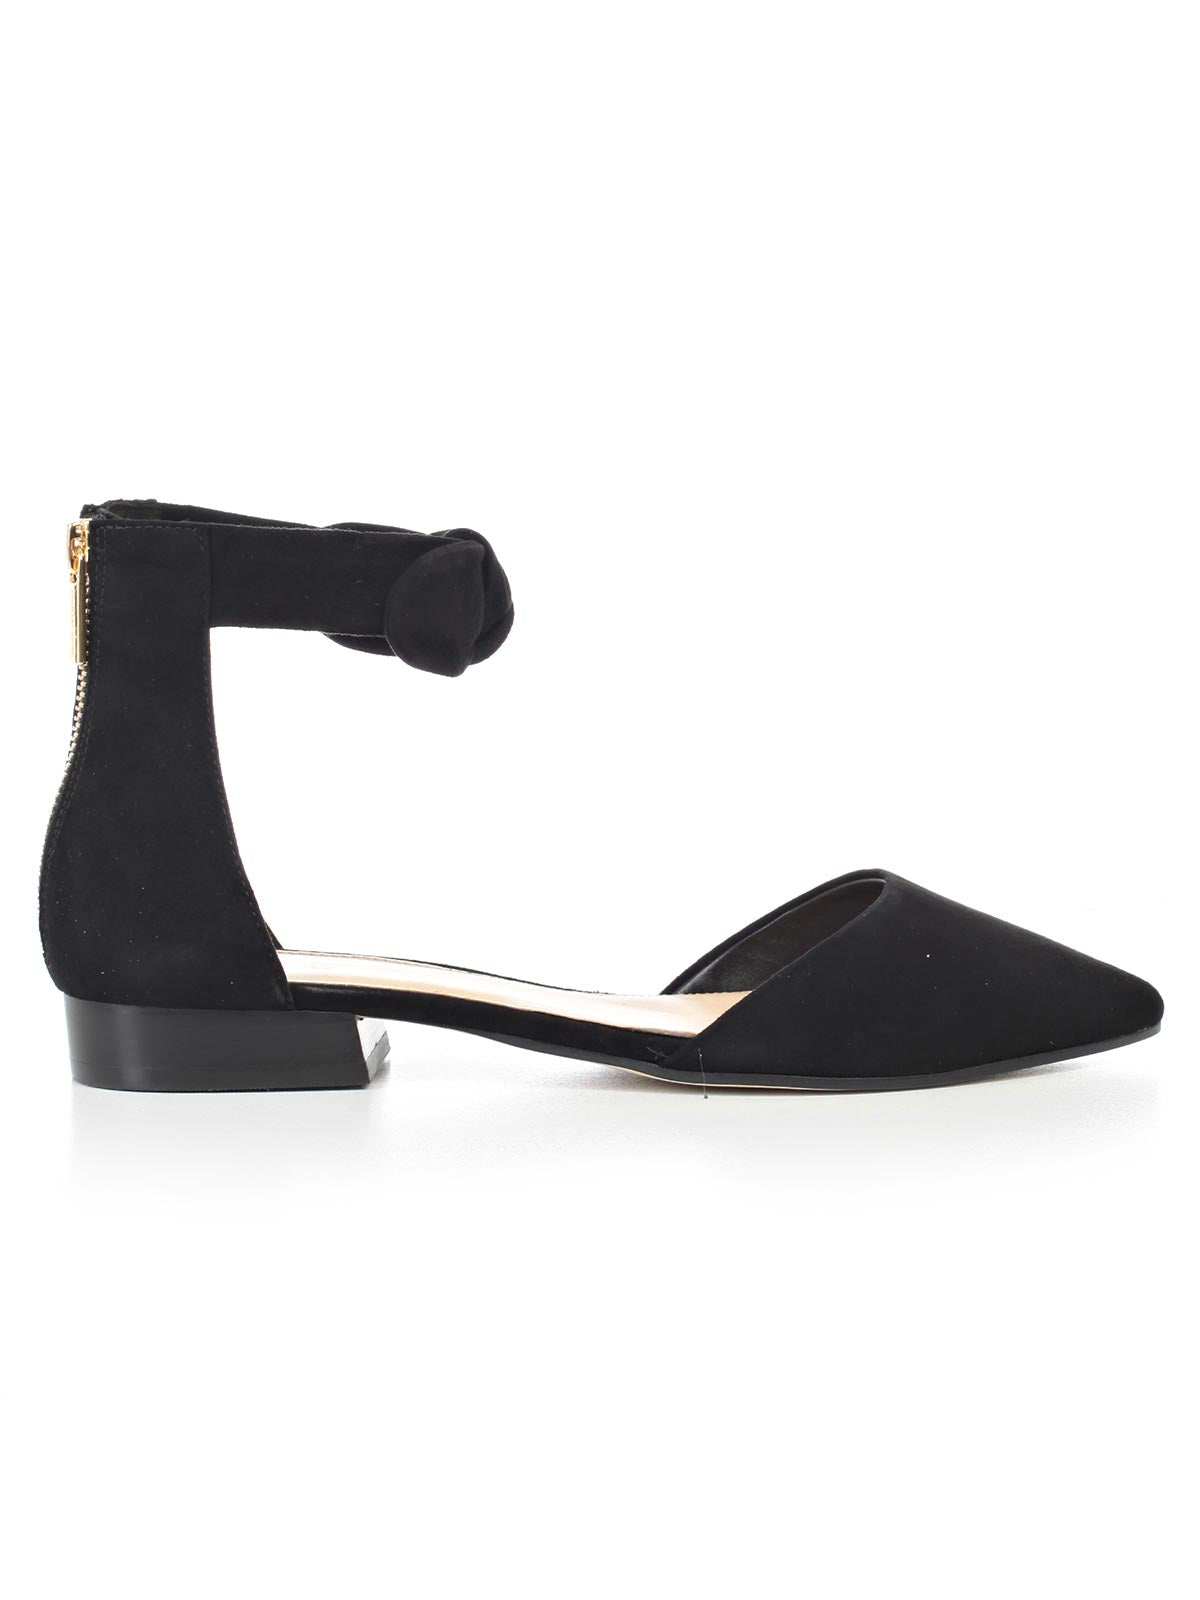 Ladies Rounded Point Toe With Studded Bow Detail Court shoes Black//Navy F9615